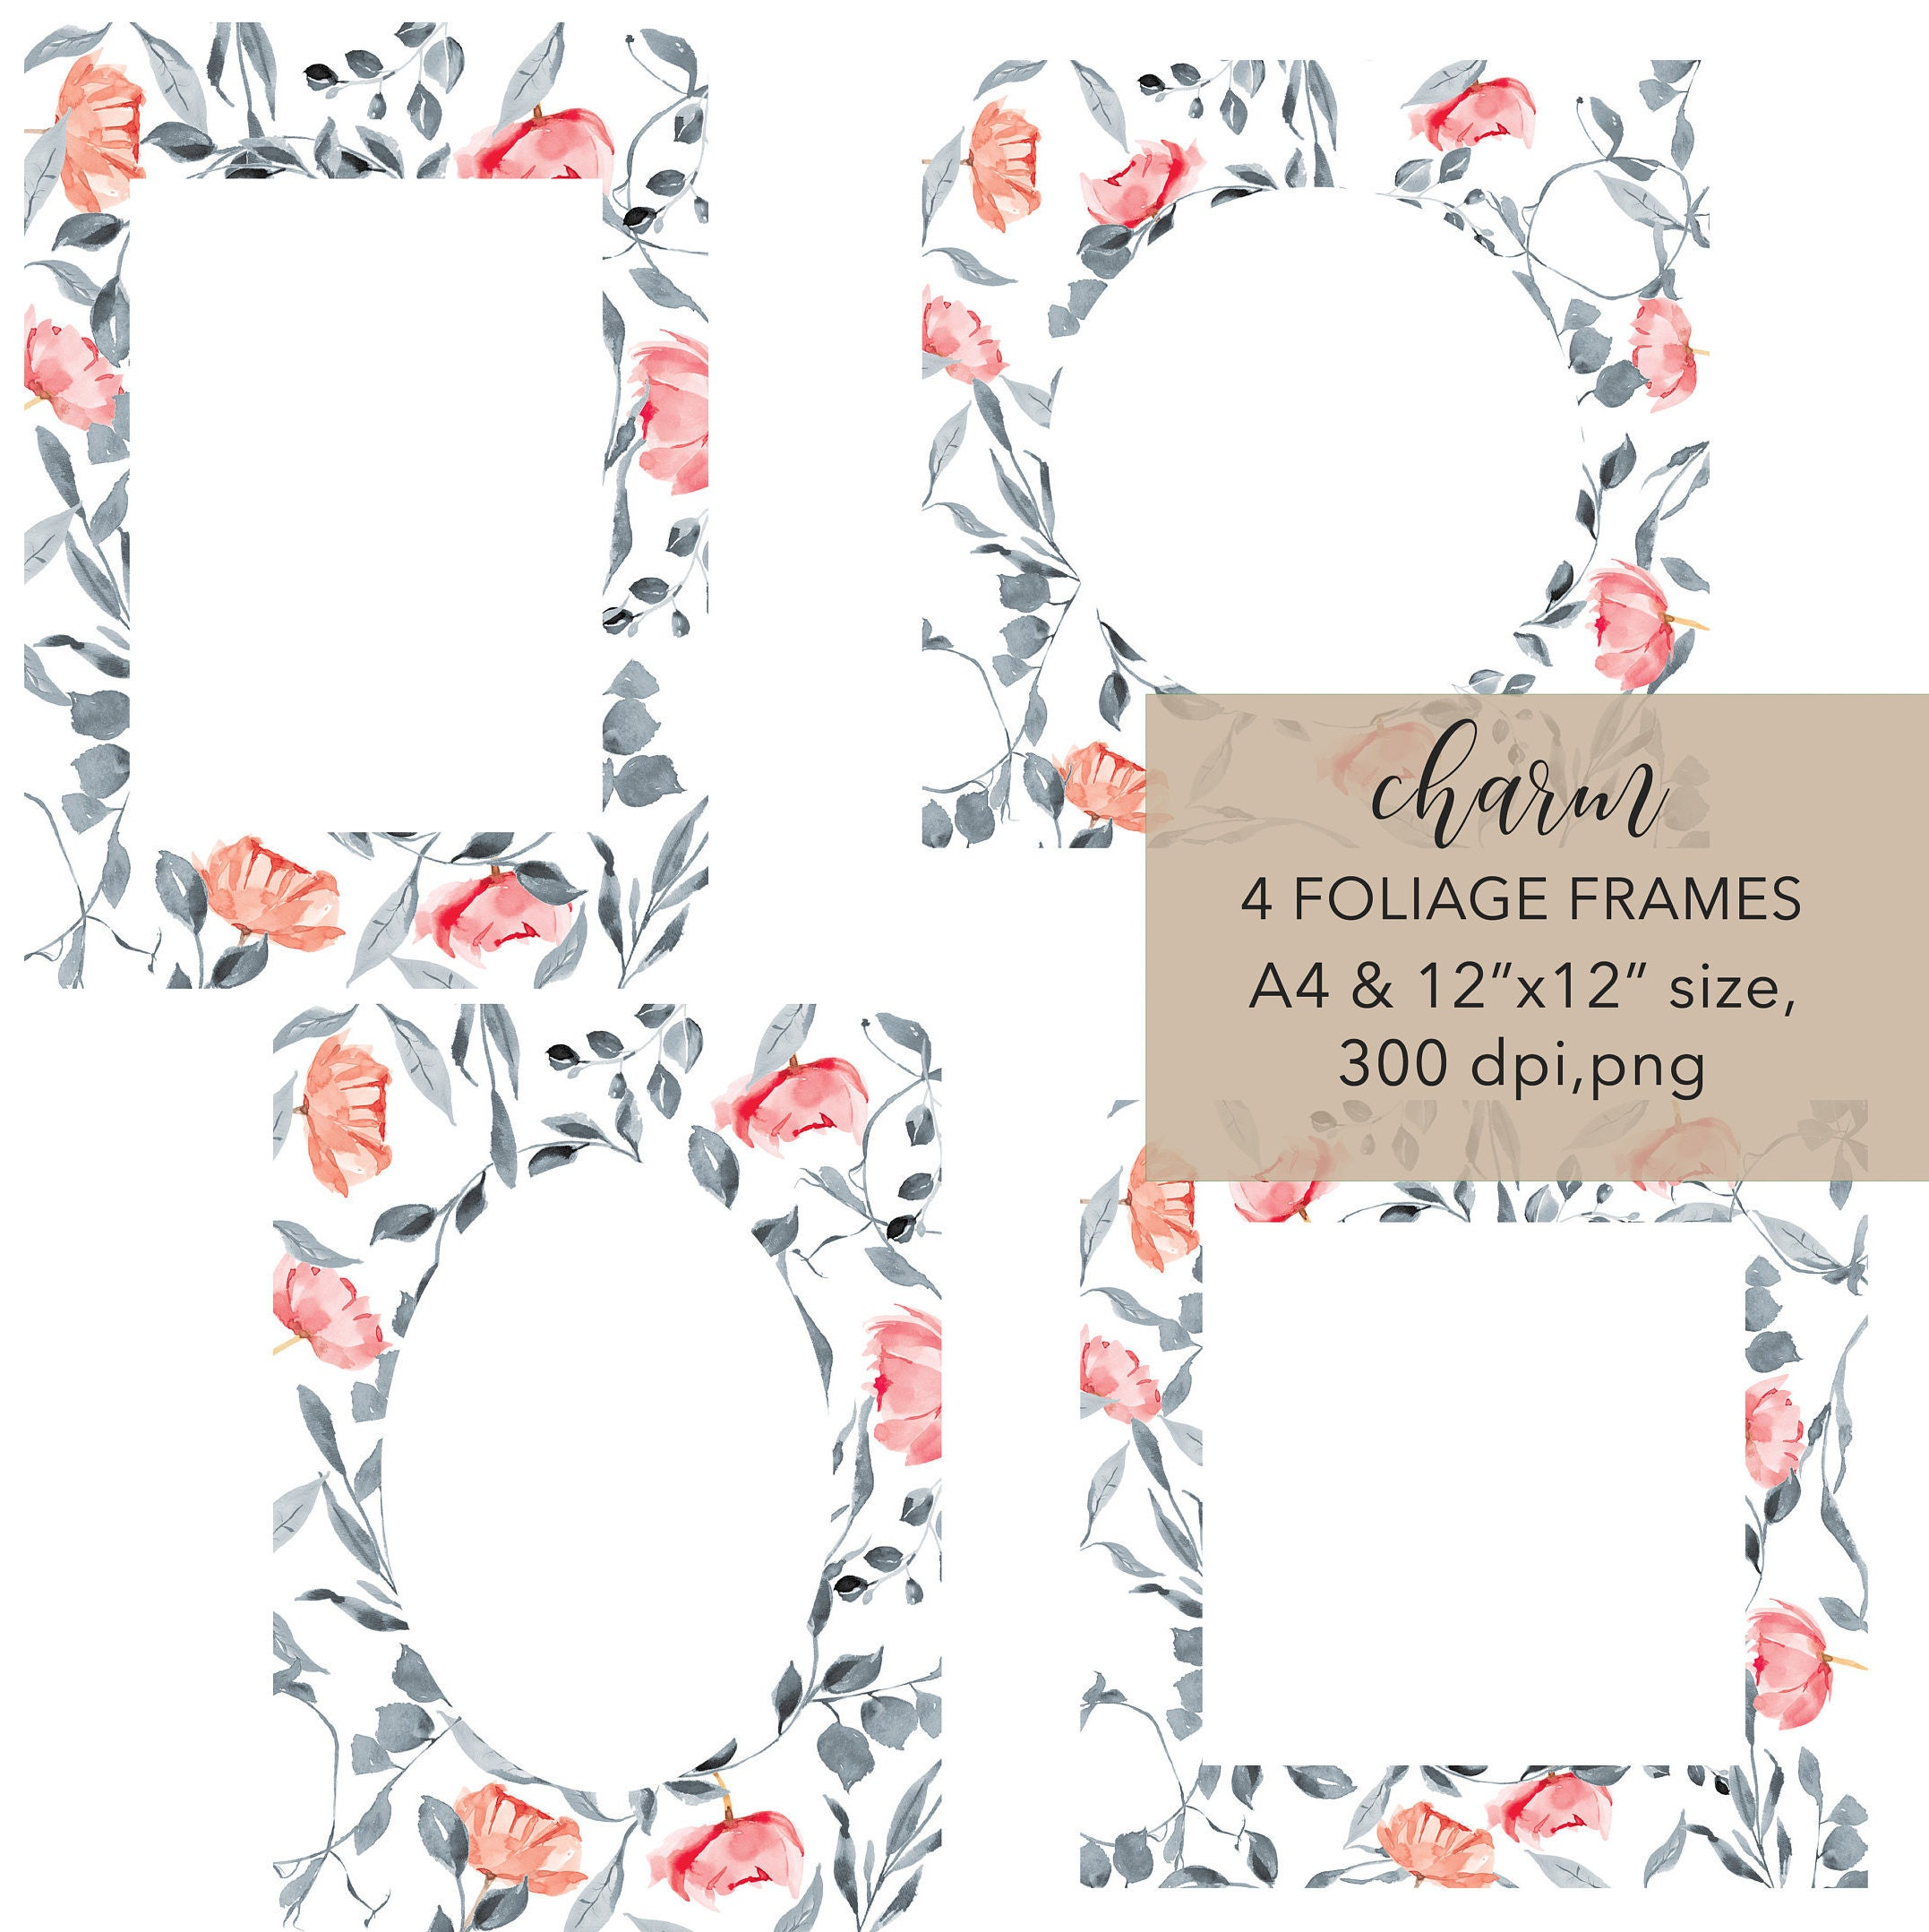 Watercolor Gray Leaves Blush Flowers Foliage Frames Etsy